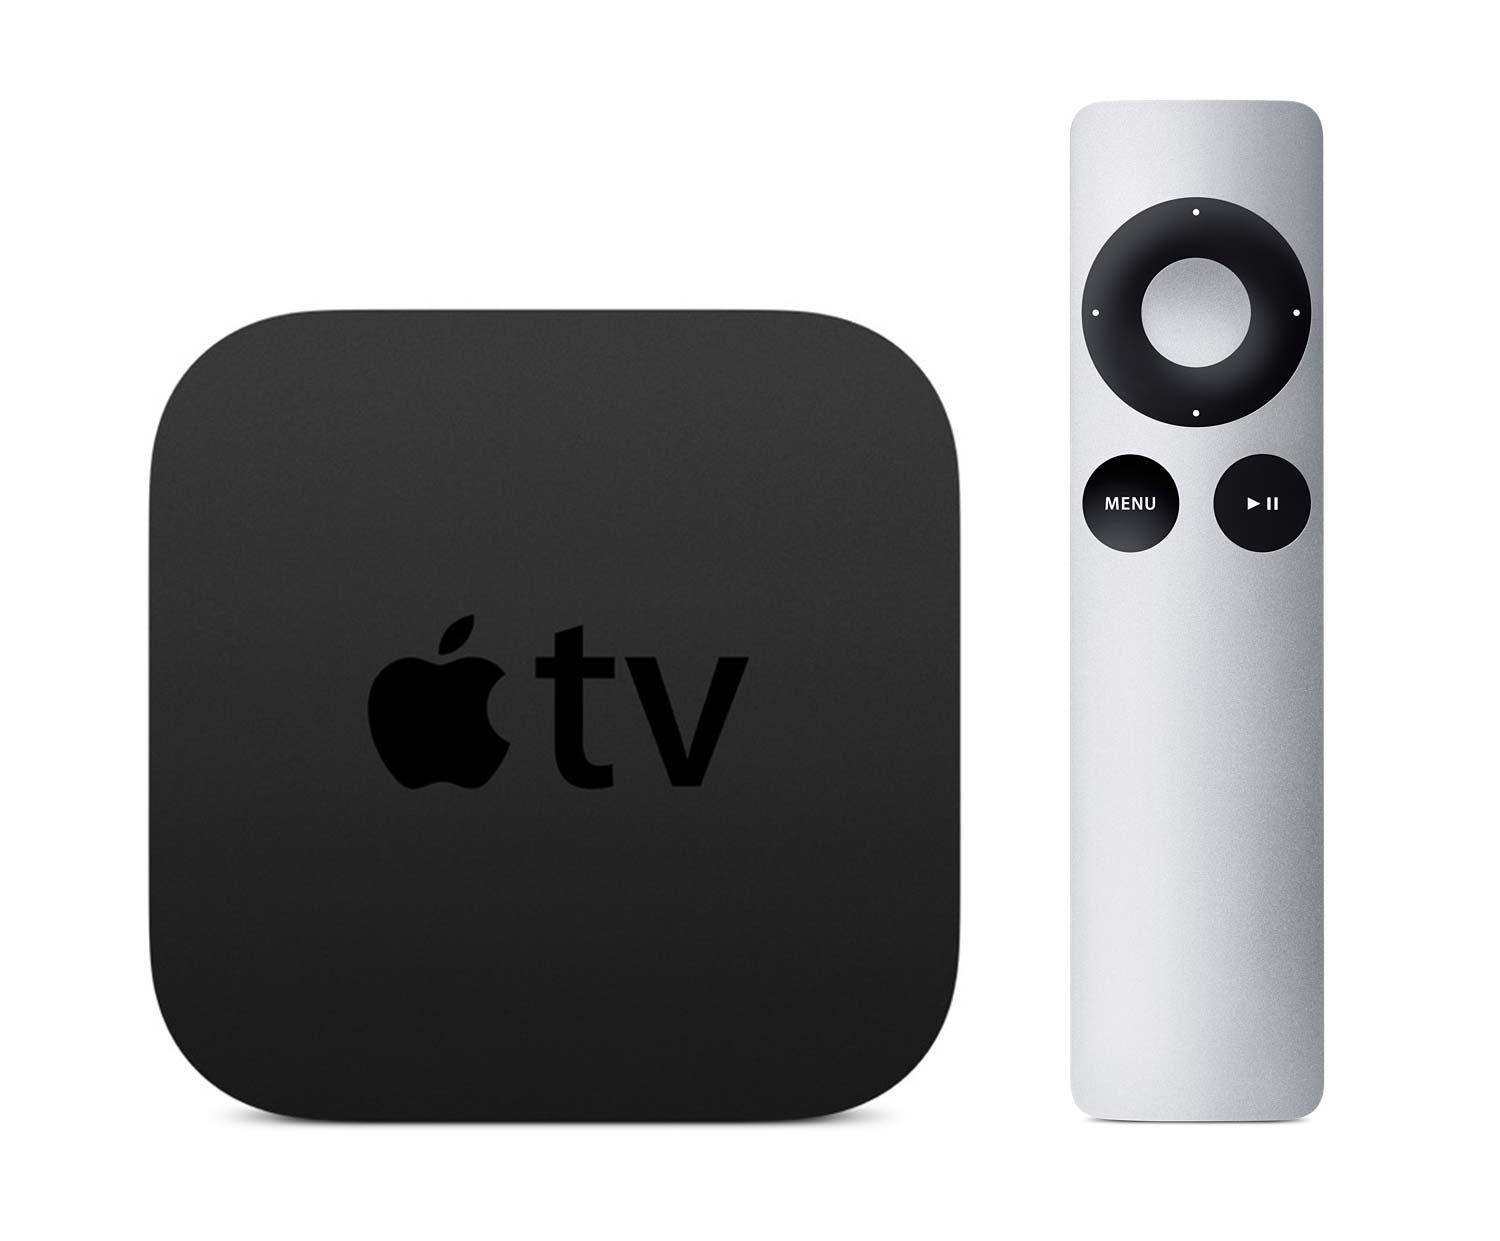 apple tv 2 generation. Black Bedroom Furniture Sets. Home Design Ideas